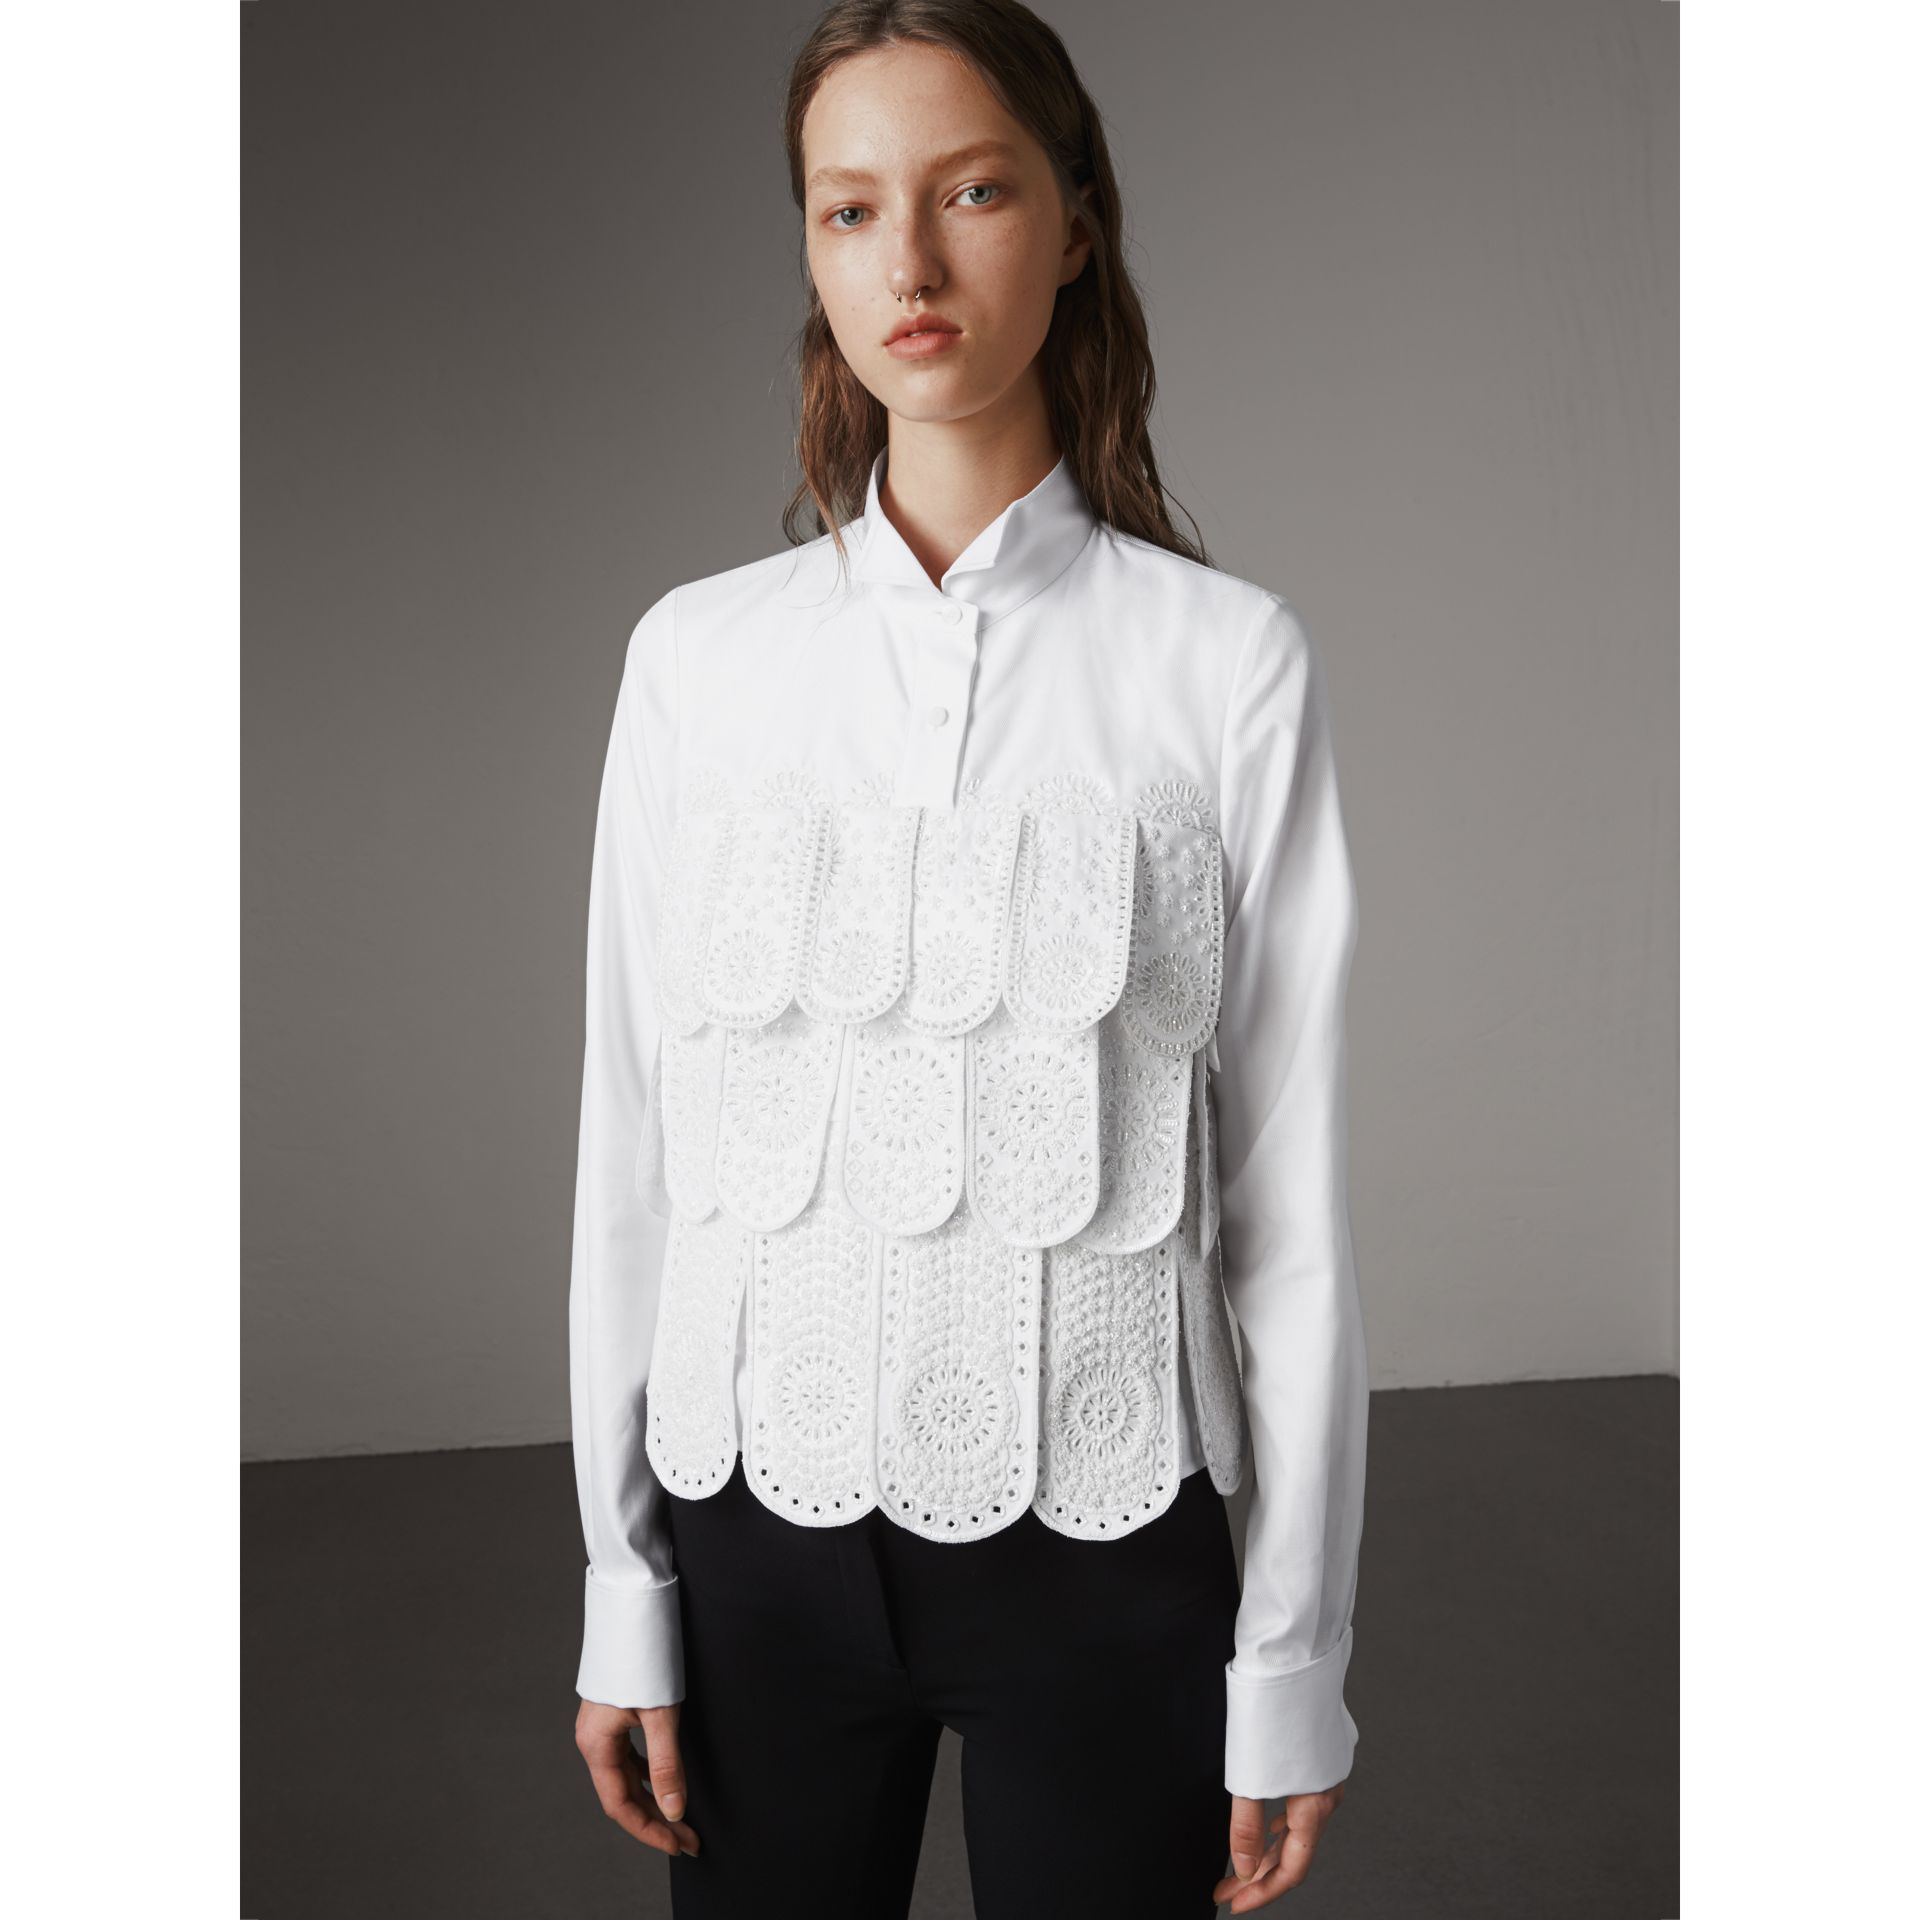 Scalloped Tier Embellished Cotton Shirt in White - Women | Burberry - gallery image 1